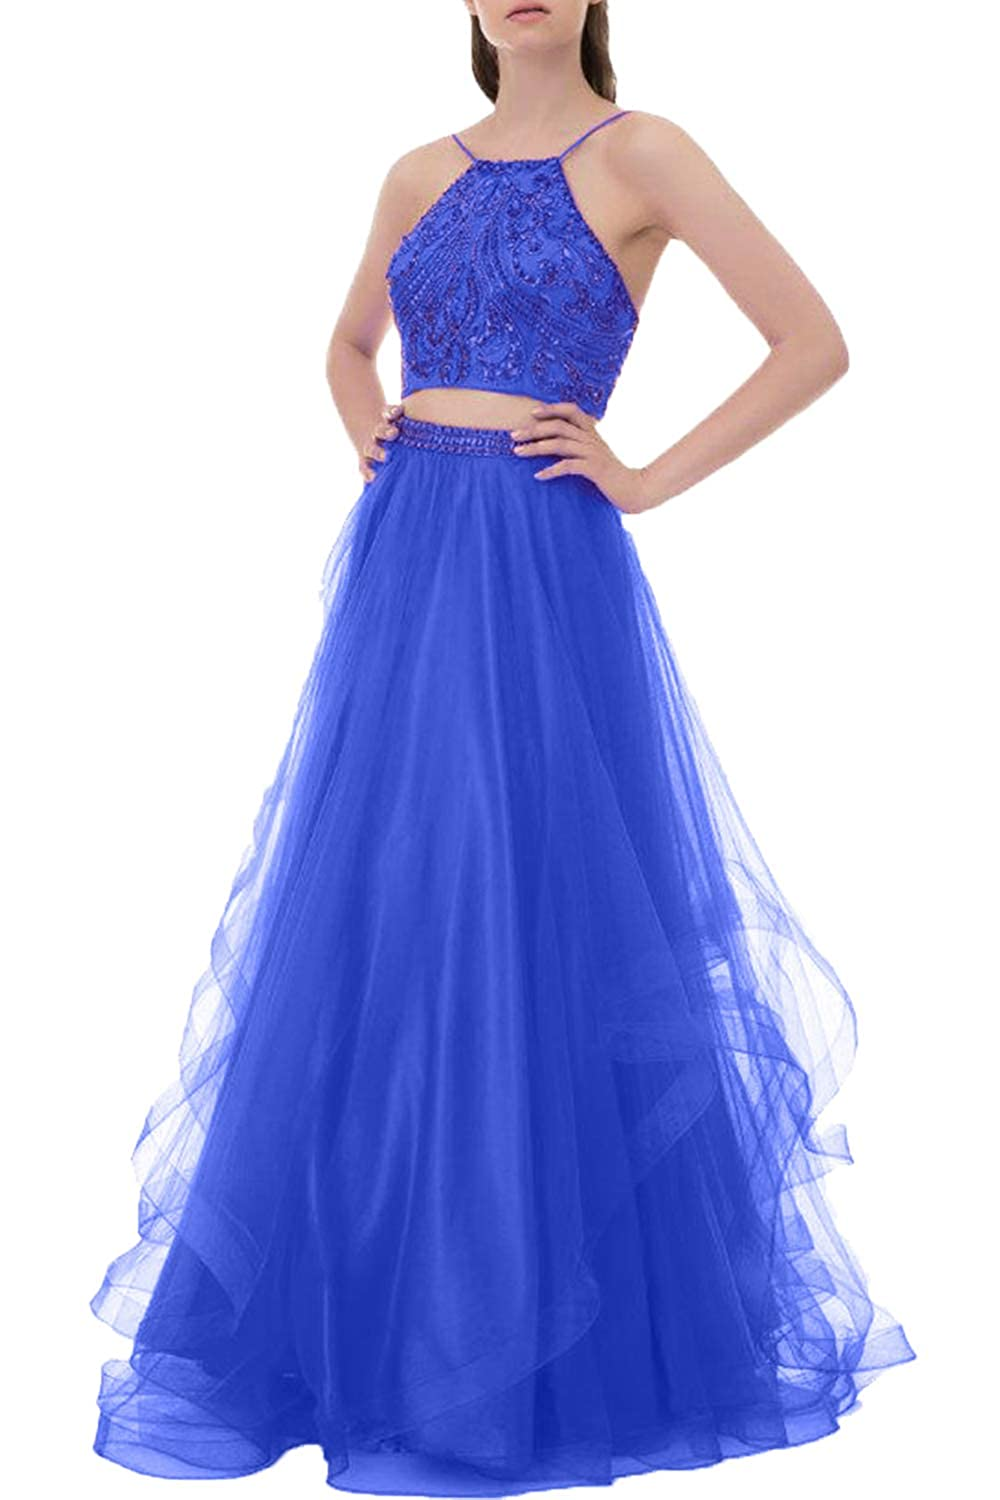 4ef838f49276 Two Pieces Prom Dress Long,Tulle,Shining Crystal Beads,Halter  Backless,Ruffles Tulle Skirt Features:Two-pieces Built in bra,Halter  Neck,Backless,Ball Gown ...